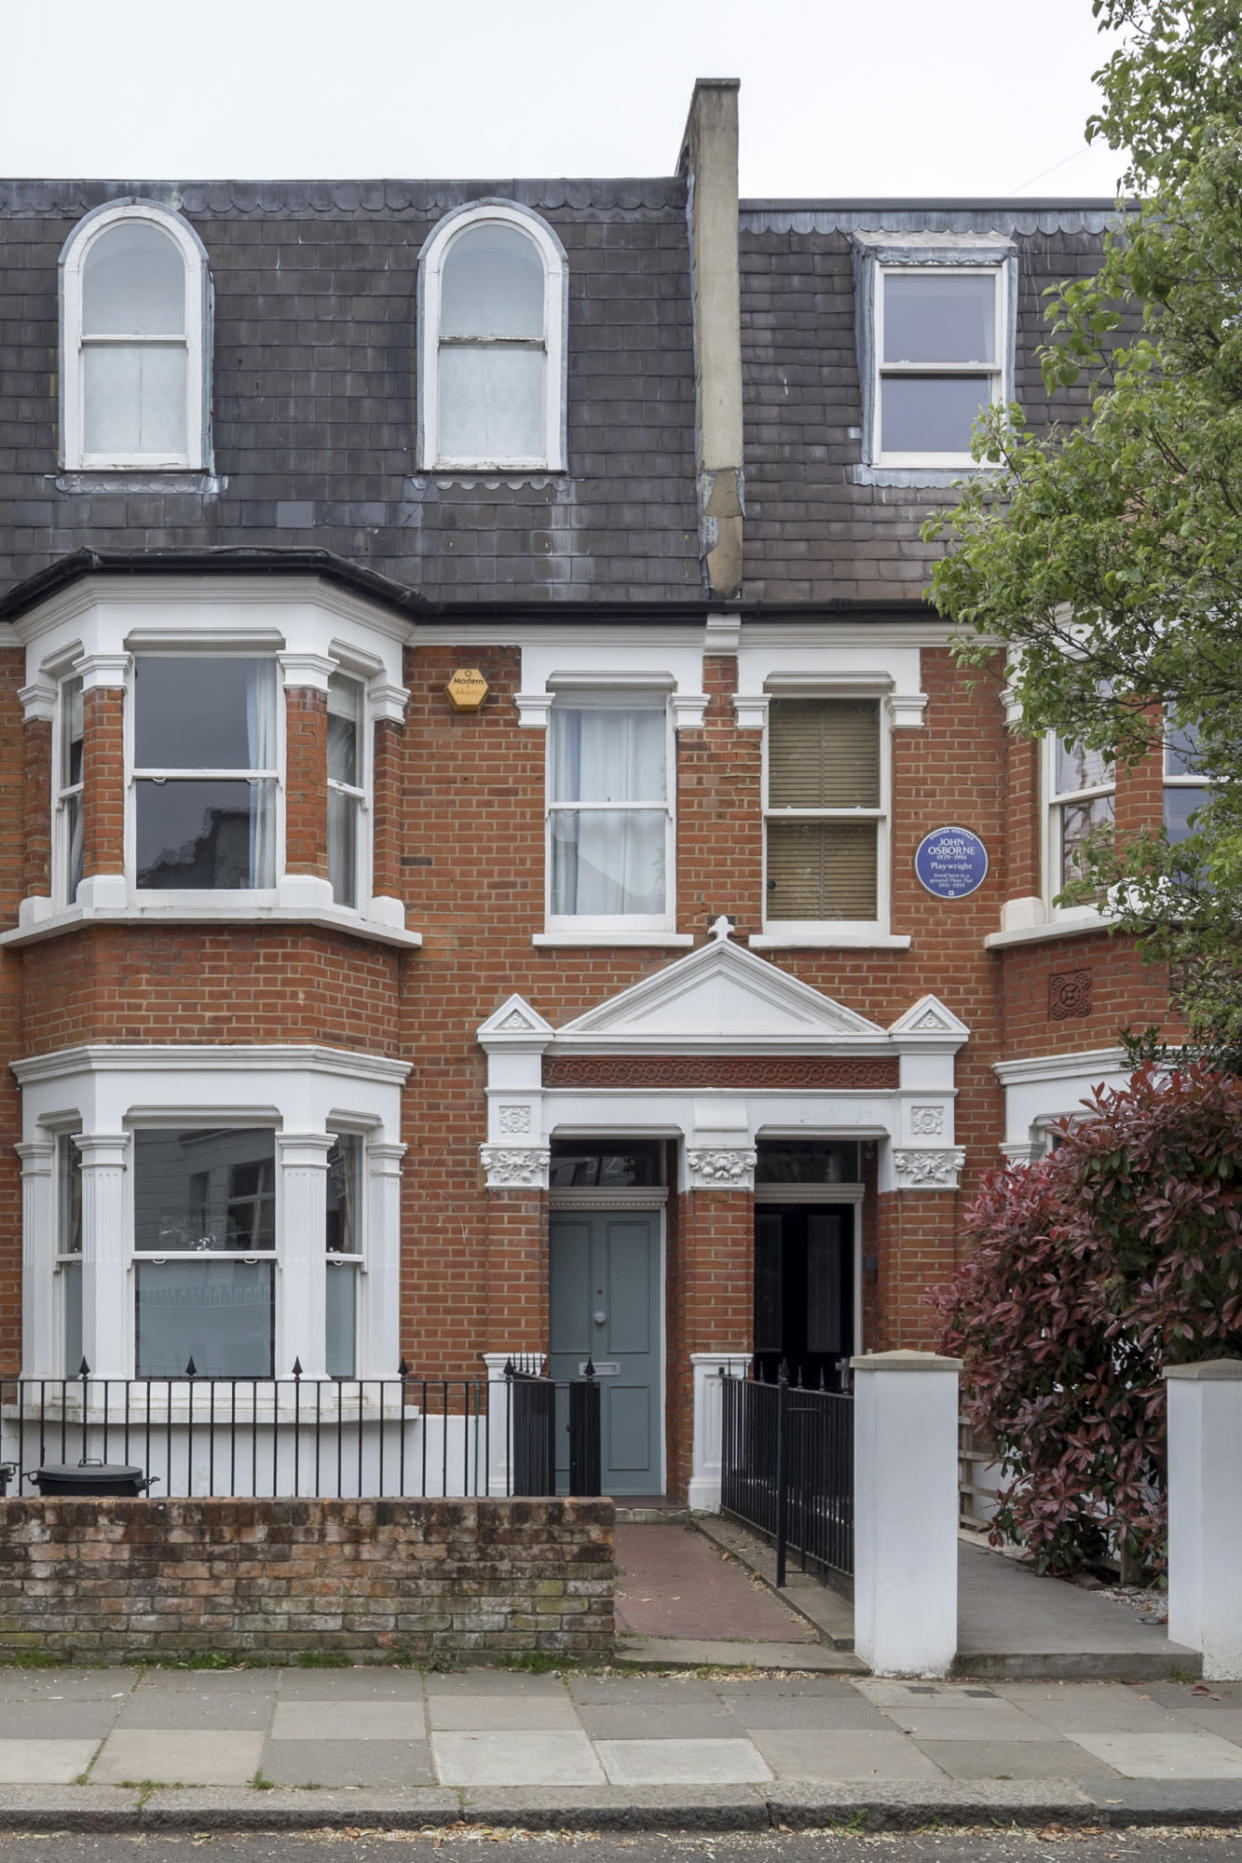 53 Caithness Road, London (English Heritage/PA)